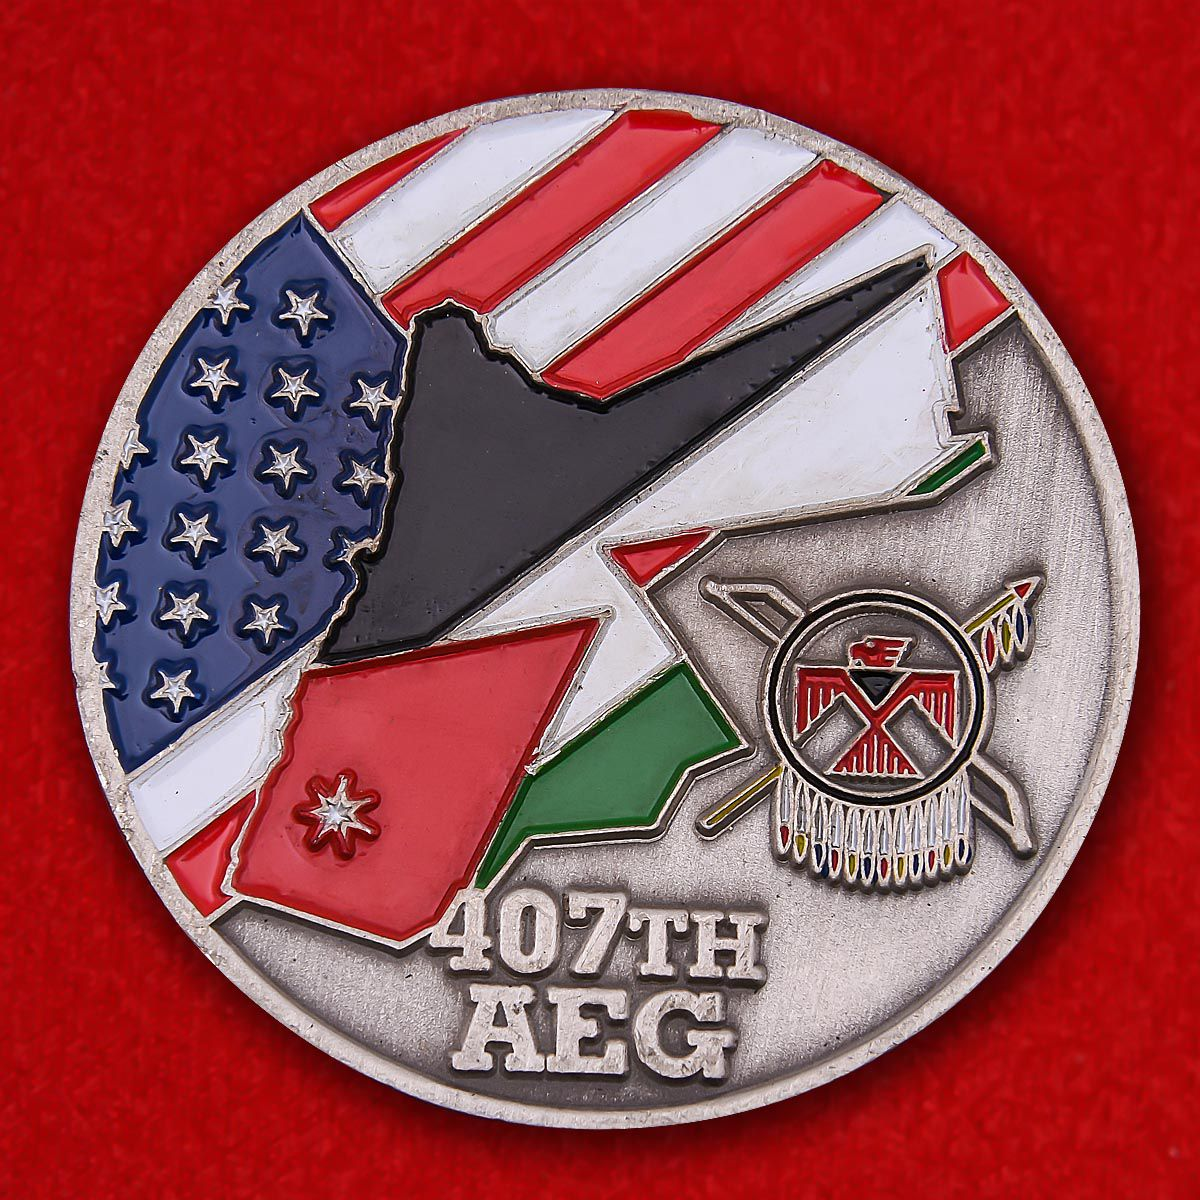 Challenge Coin 407th Expeditionary Air Group, the US Air Force